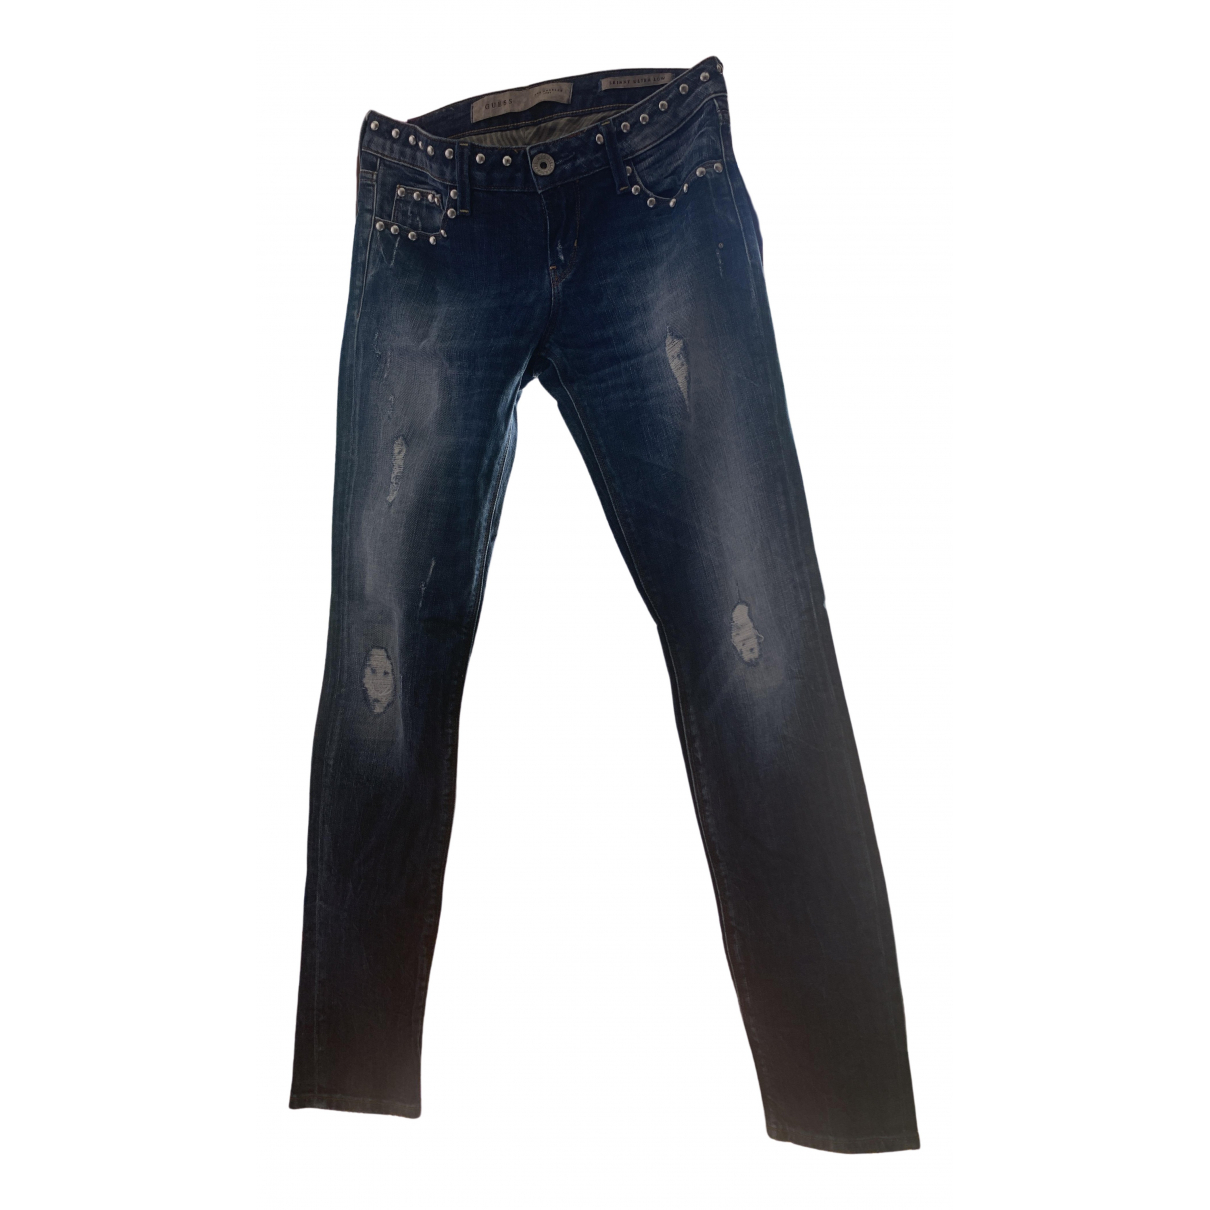 Guess \N Blue Denim - Jeans Jeans for Women 25 US